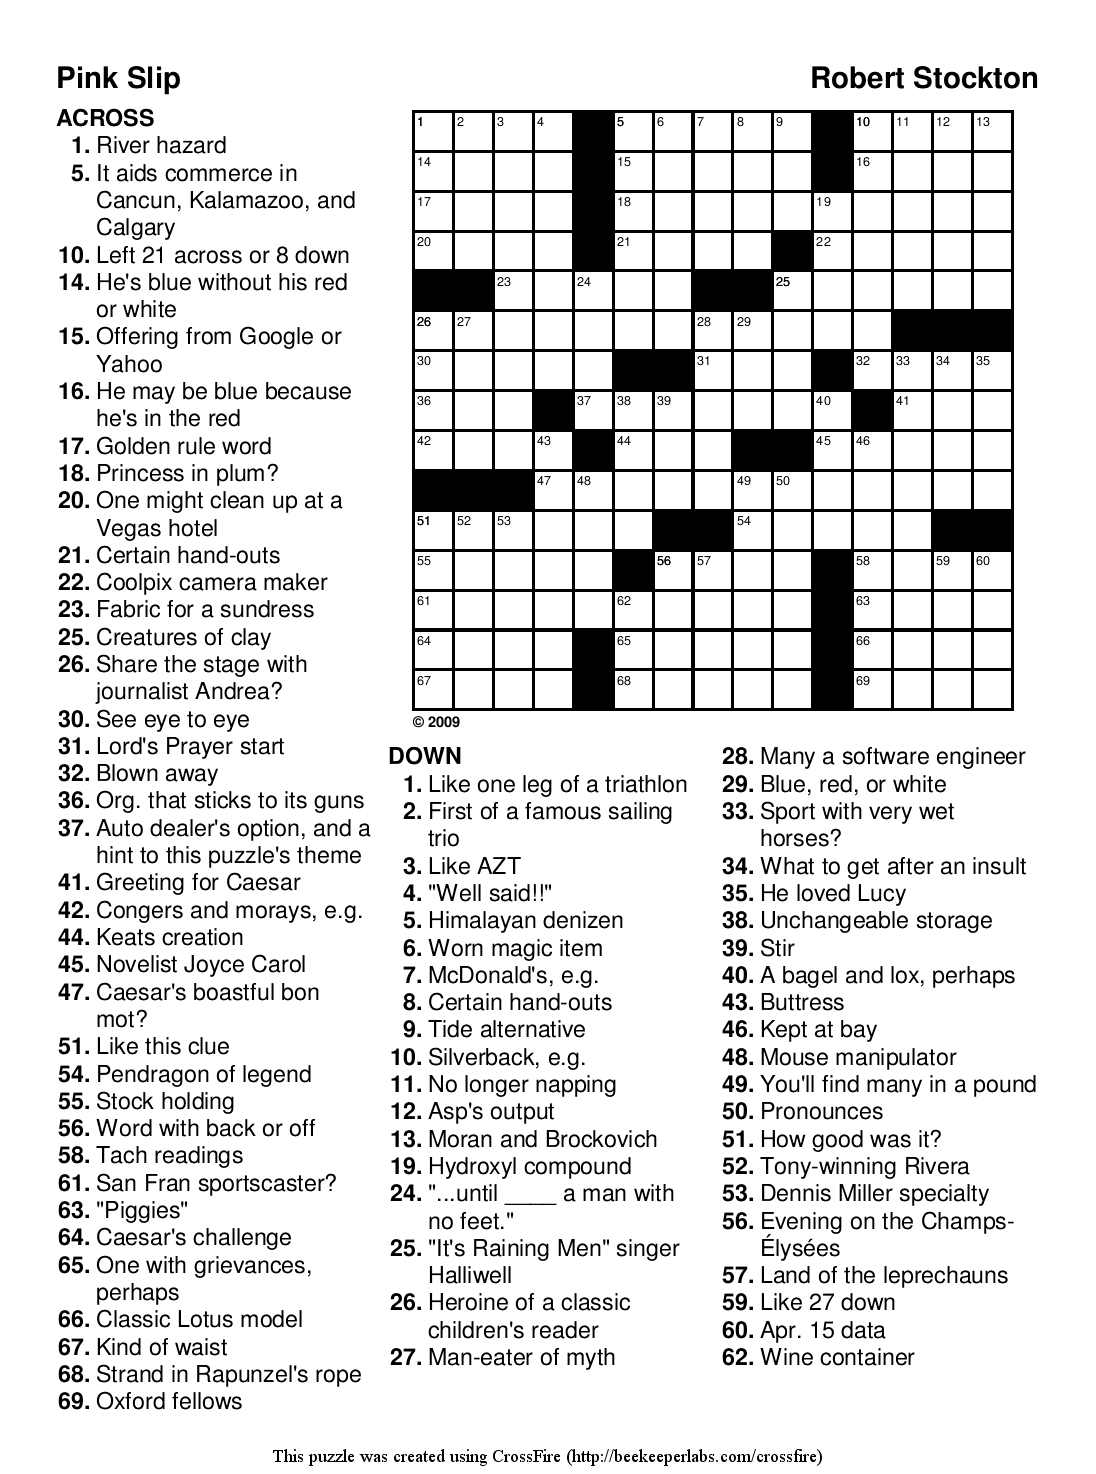 Printable Puzzles For Adults | Easy Word Puzzles Printable Festivals - Printable Difficult Puzzles For Adults